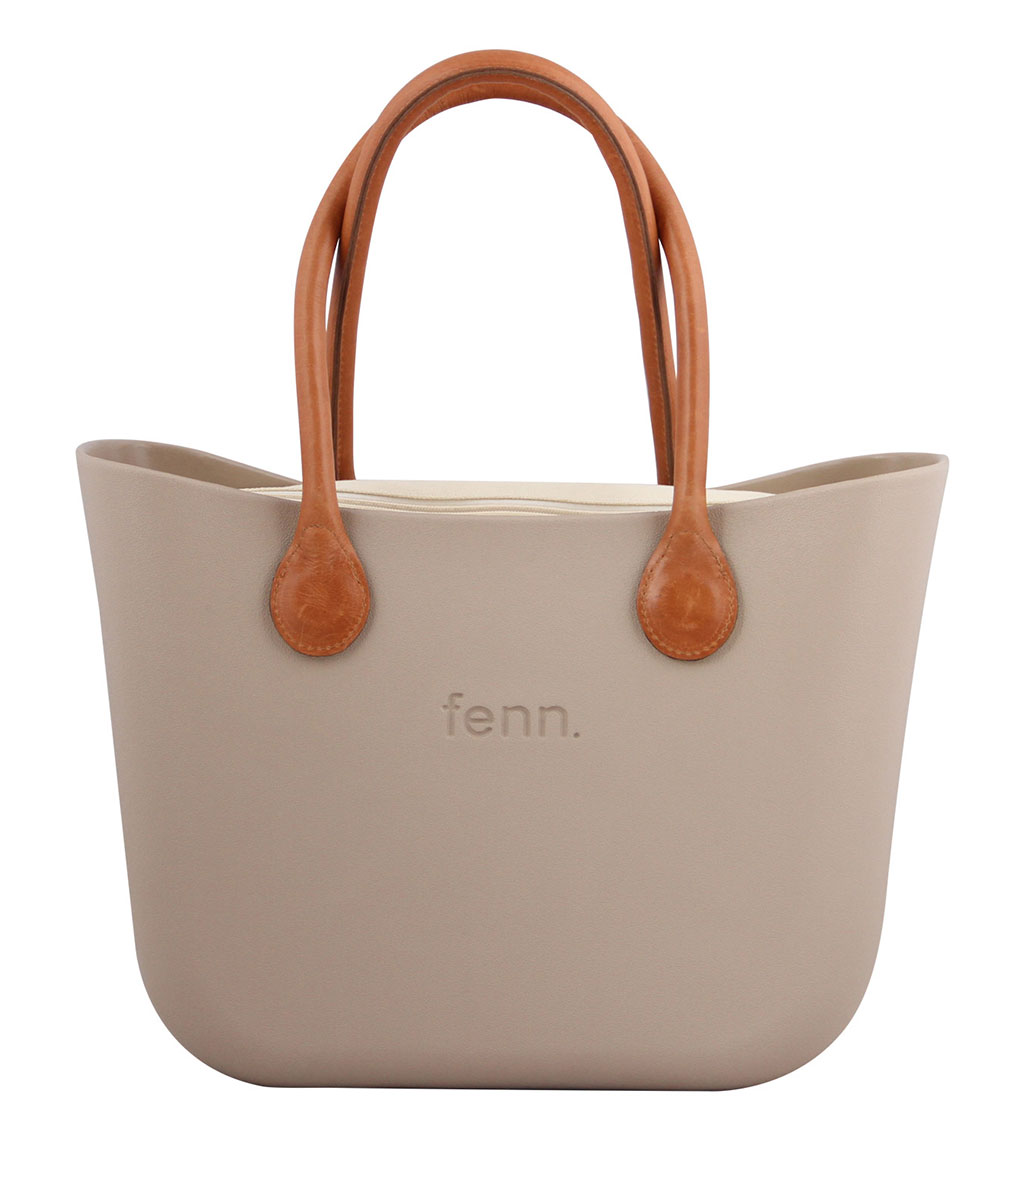 19313175f2d5 Tan Leather Handle - Fenn Collection